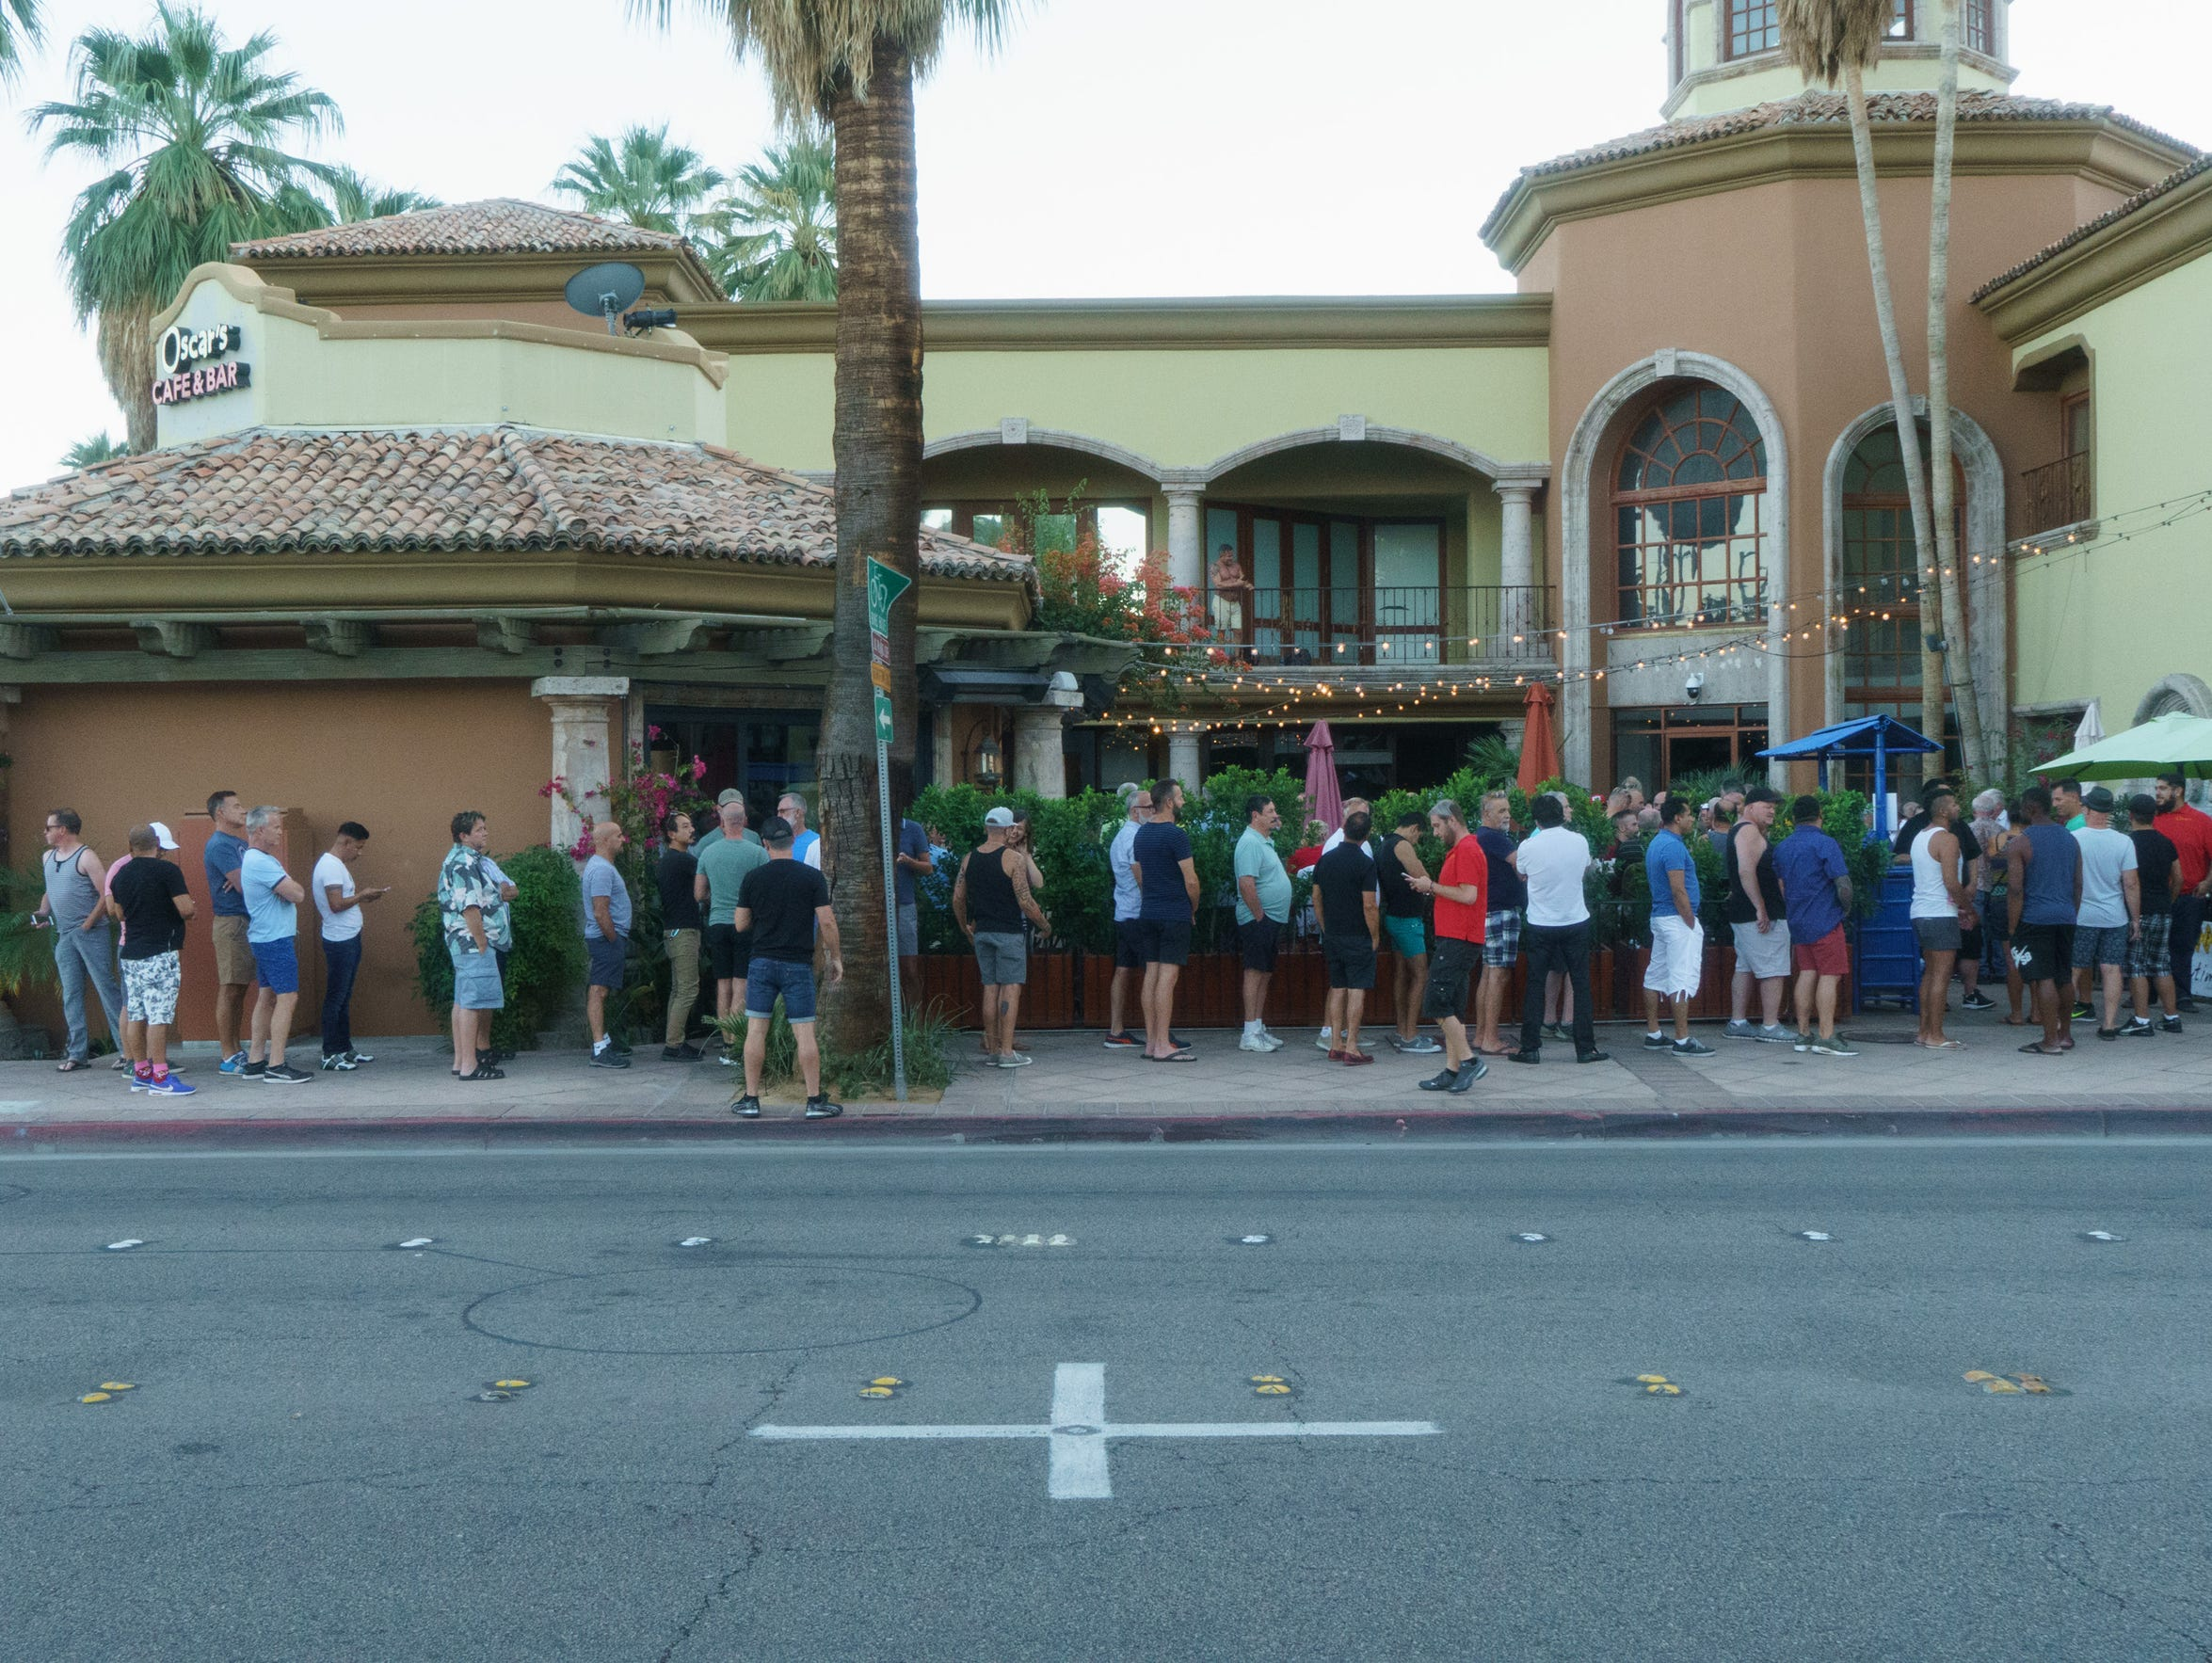 A line forms outside of Oscar's Cafe and Bar on Sunday